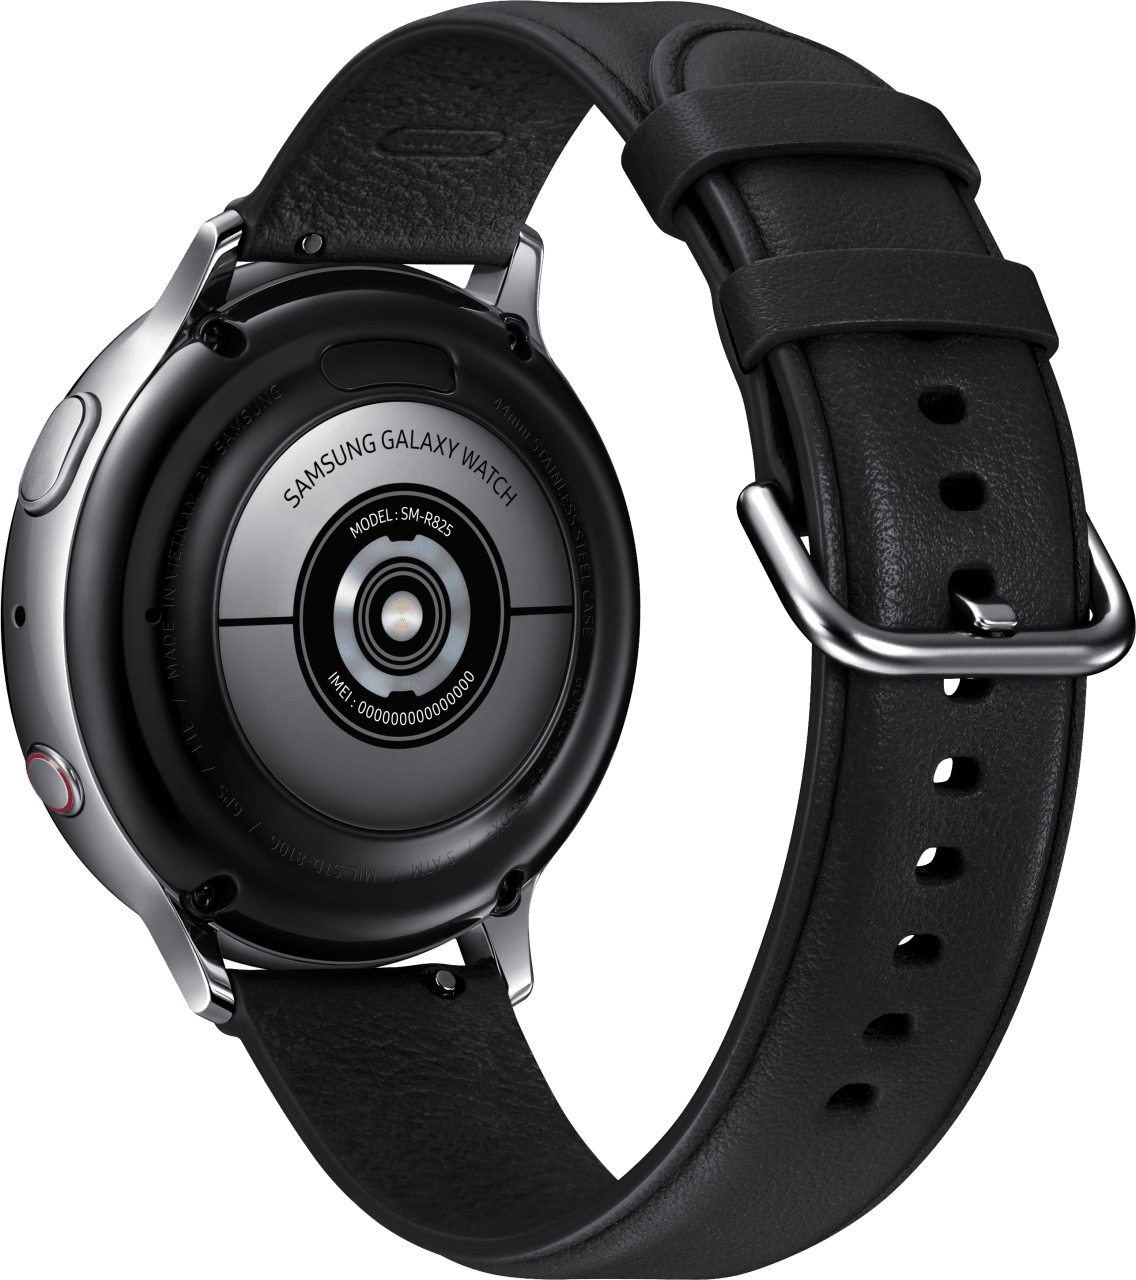 Silver Samsung Galaxy Watch Active2 (LTE), 44mm Stainless steel case, Leather band.3